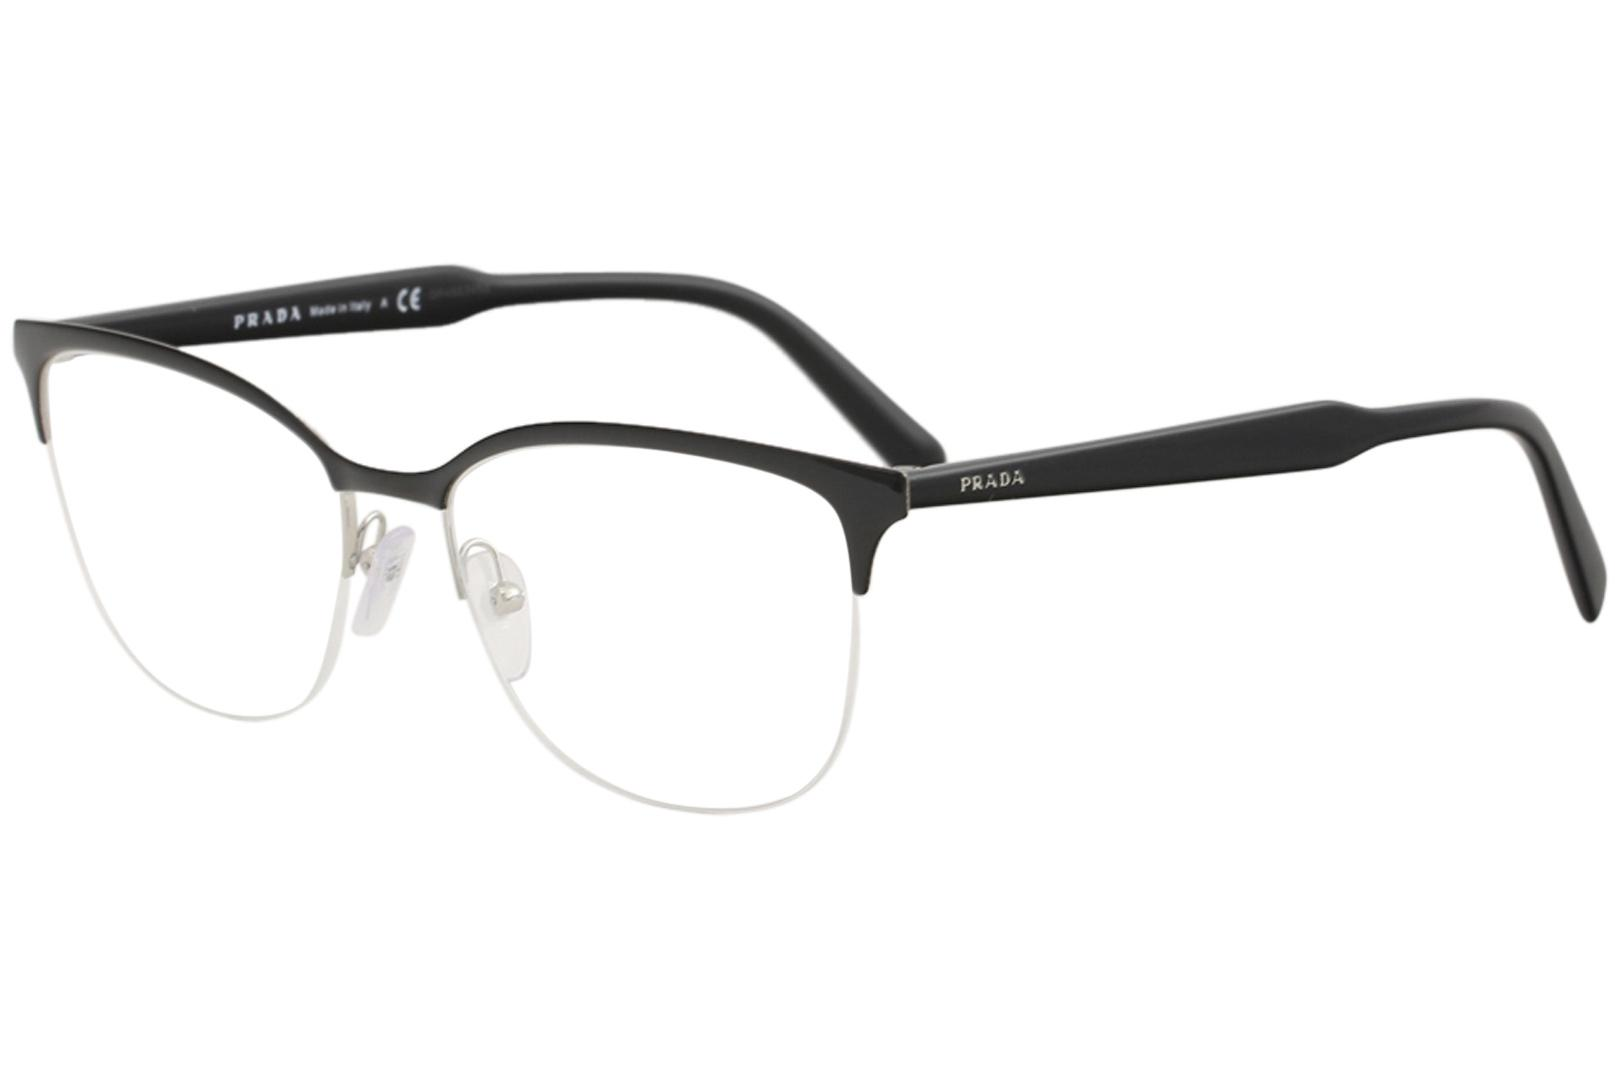 4356d4f1d3d Prada Men S Eyegles Vpr53v Vpr 53 V Half Rim Optical Frame